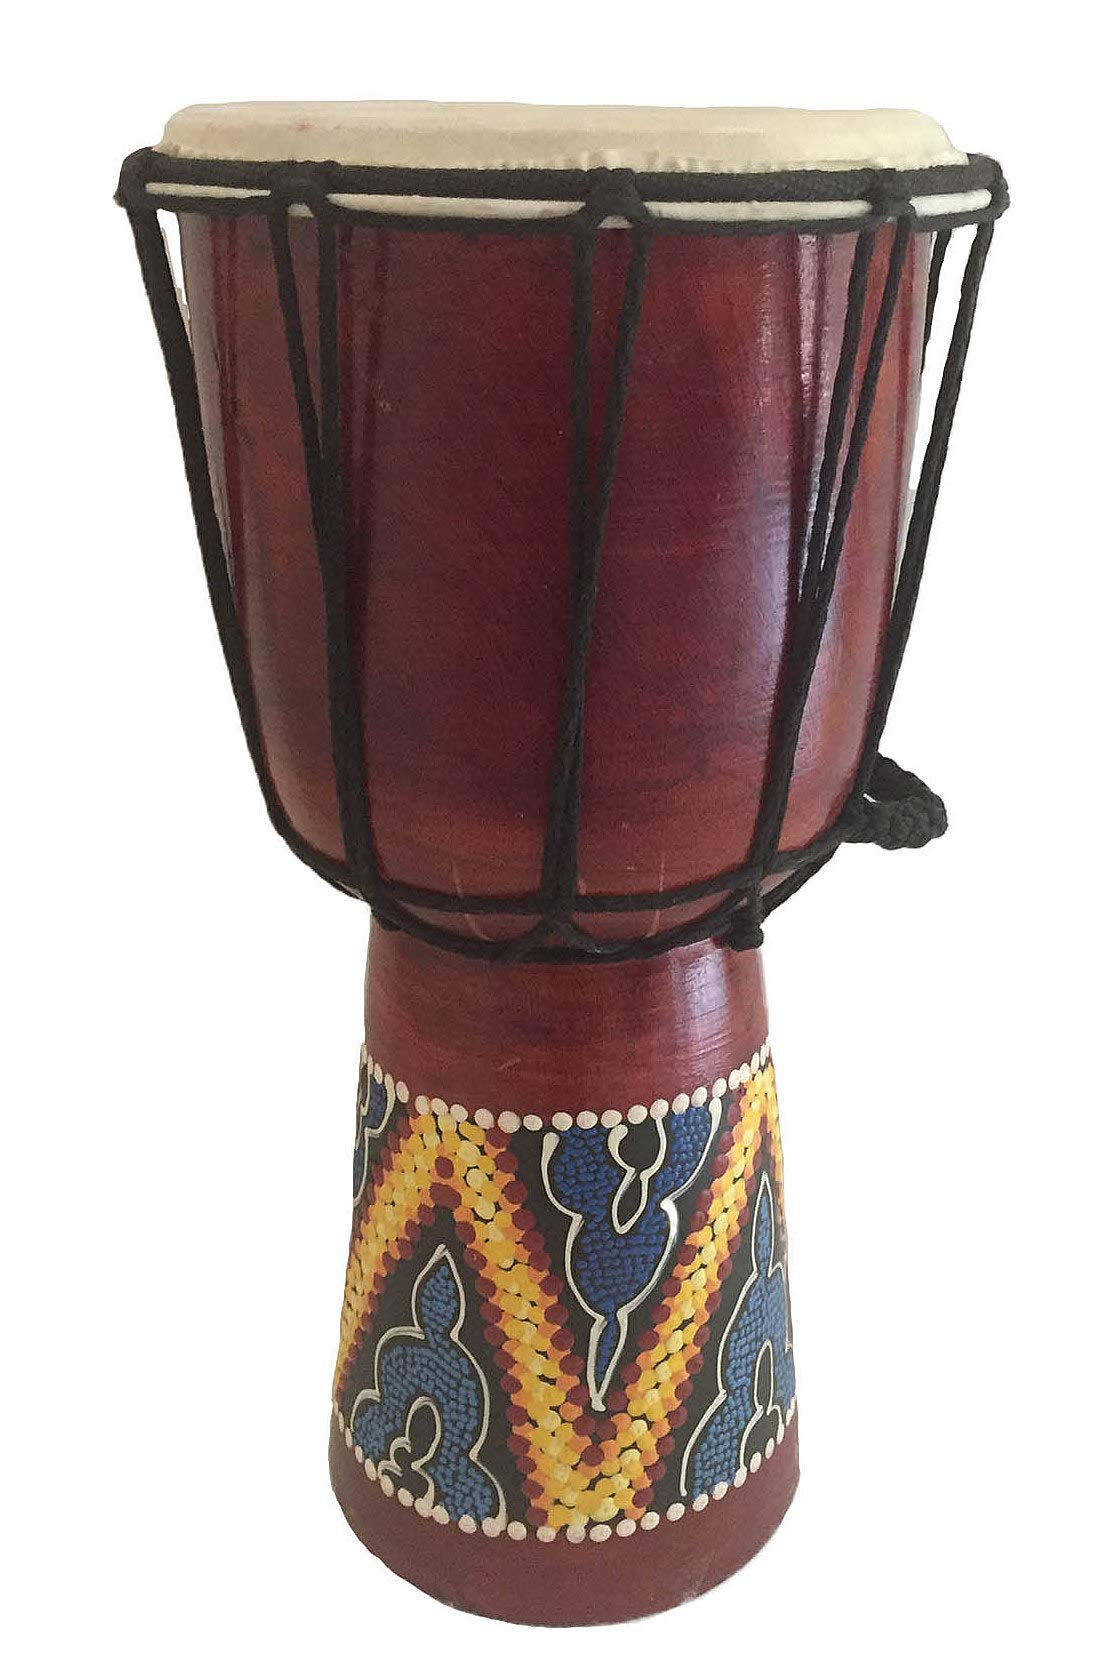 Djembe Drum Bongo Congo African Drum Wooden Hand Drum Professional Sound - JIVE BRAND (12'' High - Painted/Carved)